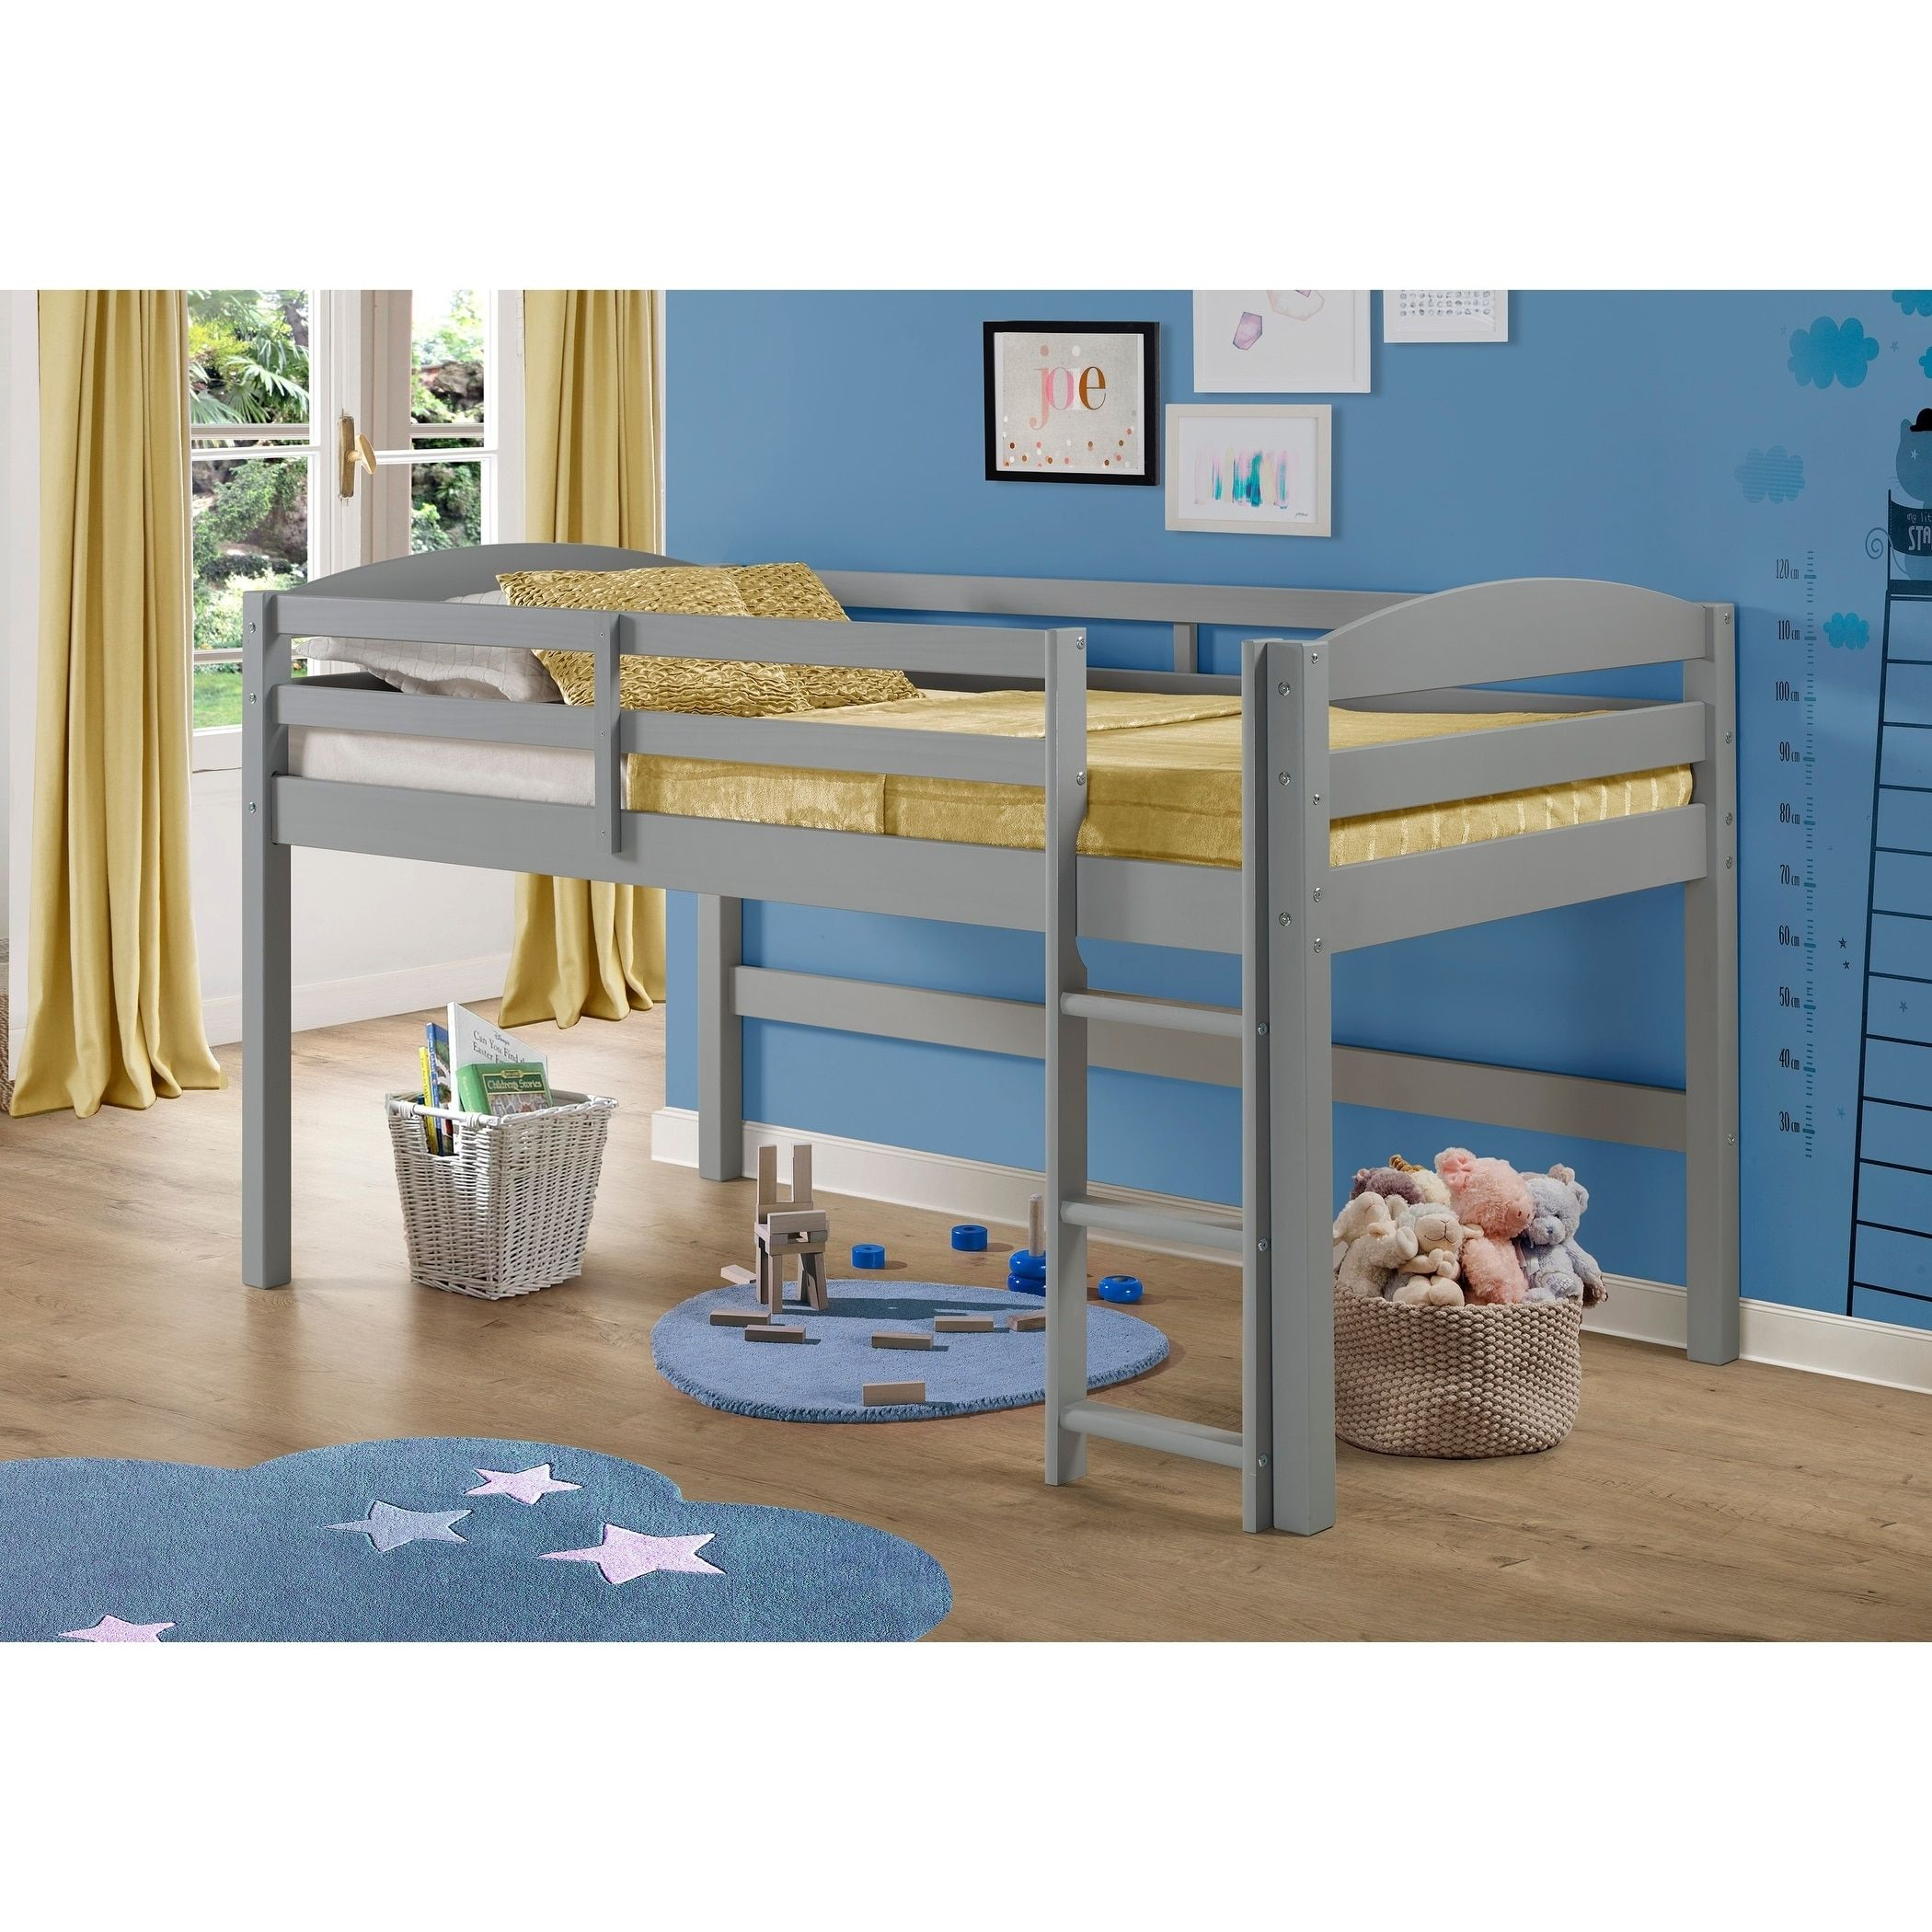 Twin bed loft bed  Solid Wood Low Loft Twin Bed Grey  Grey Finish  Loft twin bed